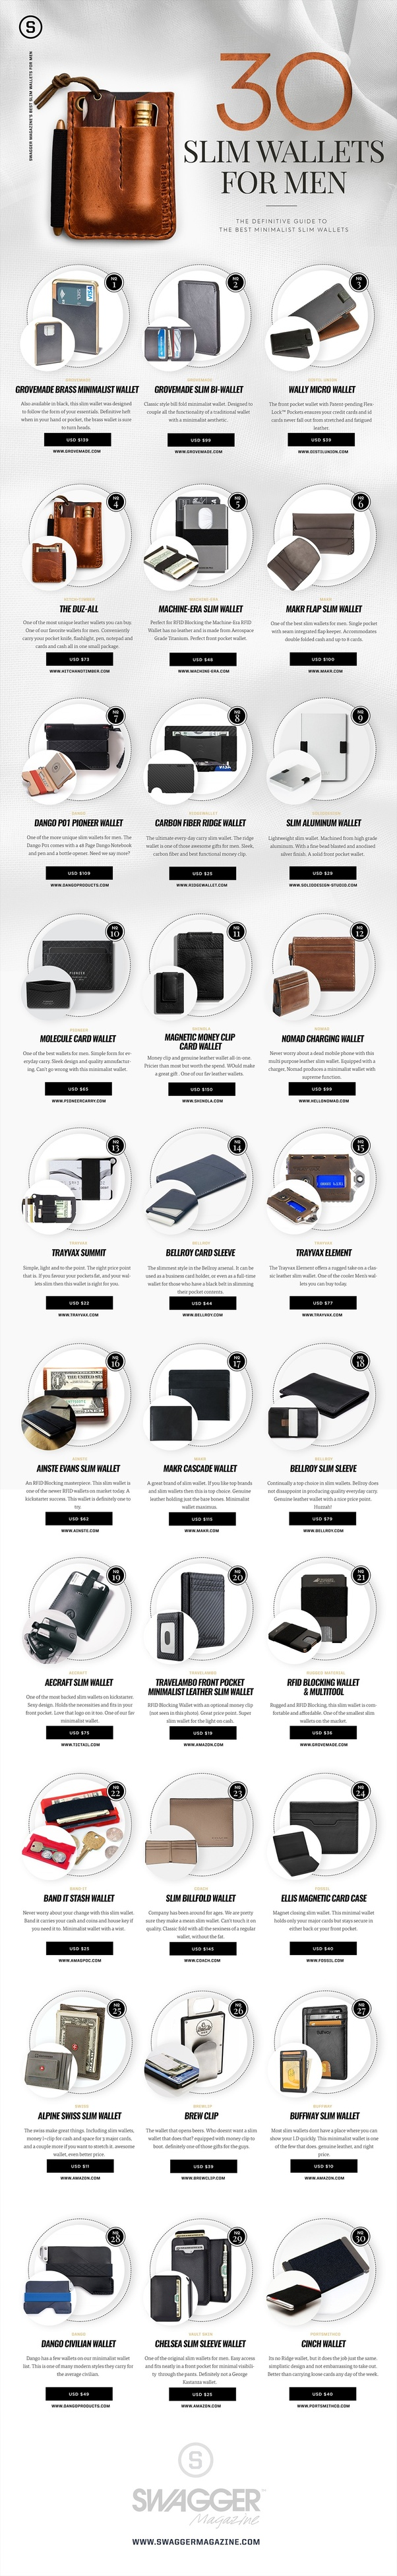 ad4022aa6d3 What are some good front pocket wallets or card cases for a guy  - Quora